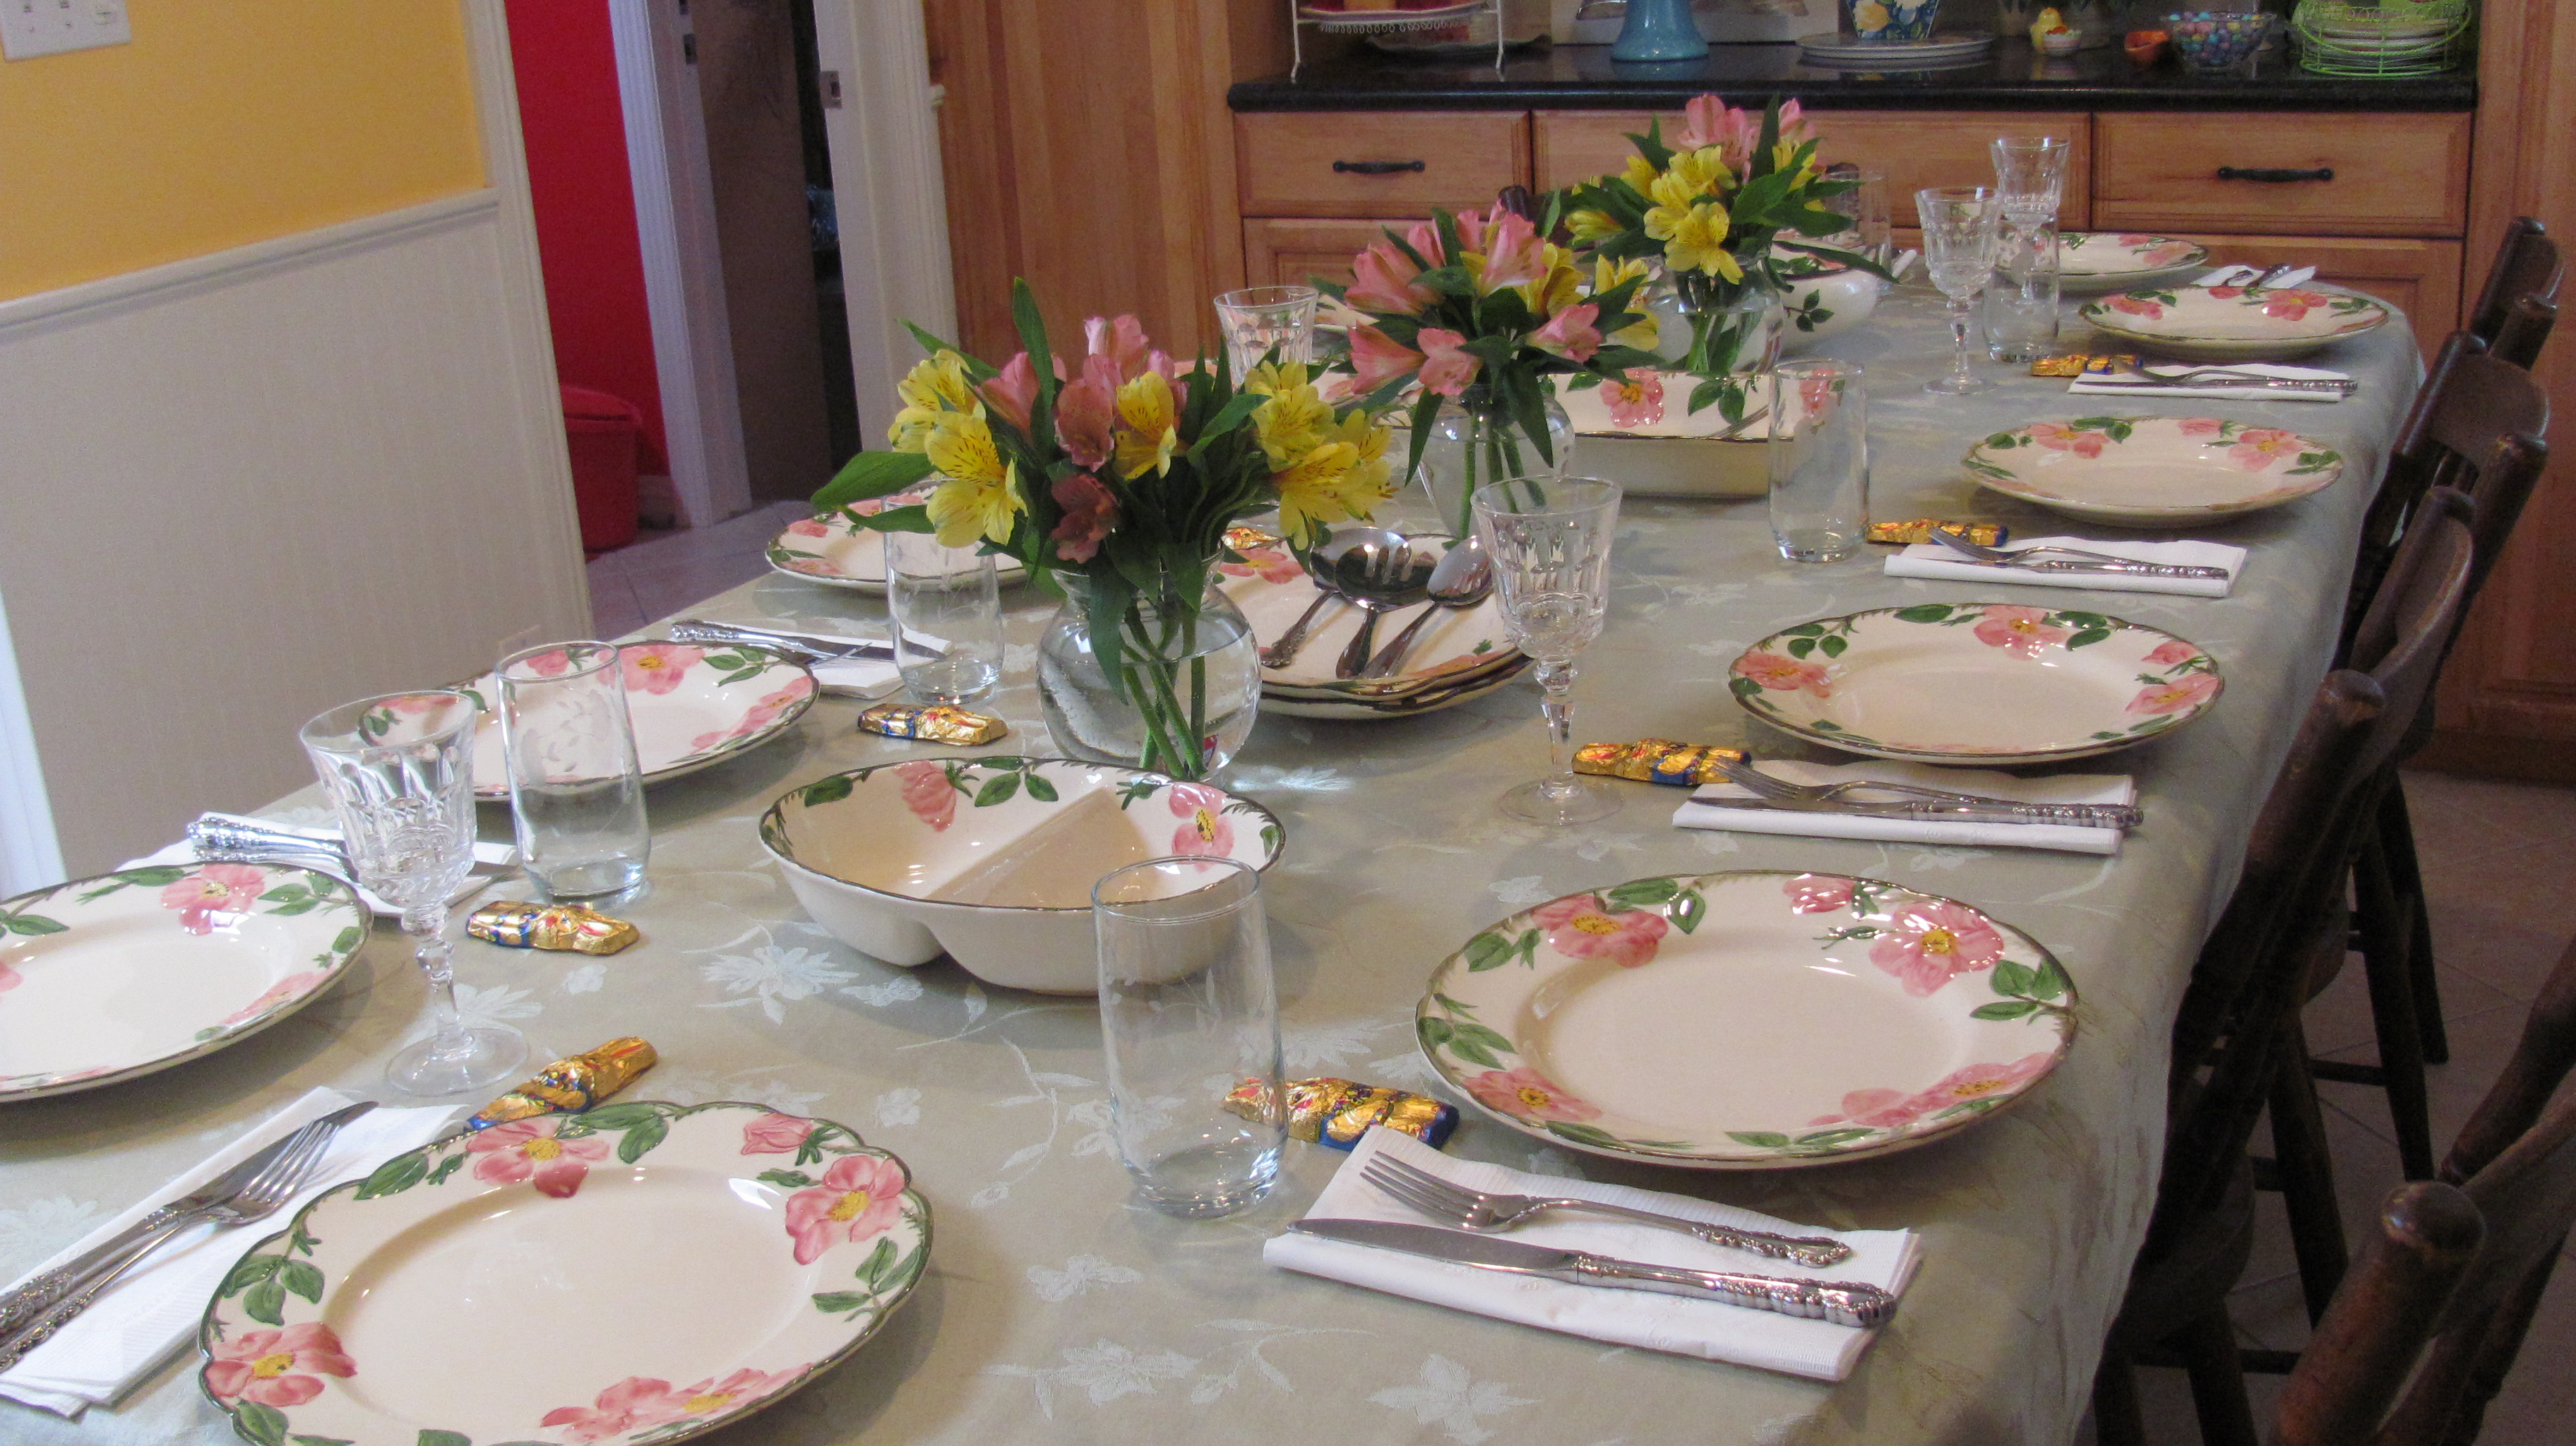 This Easter I had the opportunity to dine at a home where there was a beatiful festival table setting of pink and green. Fresh flowers lined the table. & Spring table settings | Multi Cultural Cooking Network